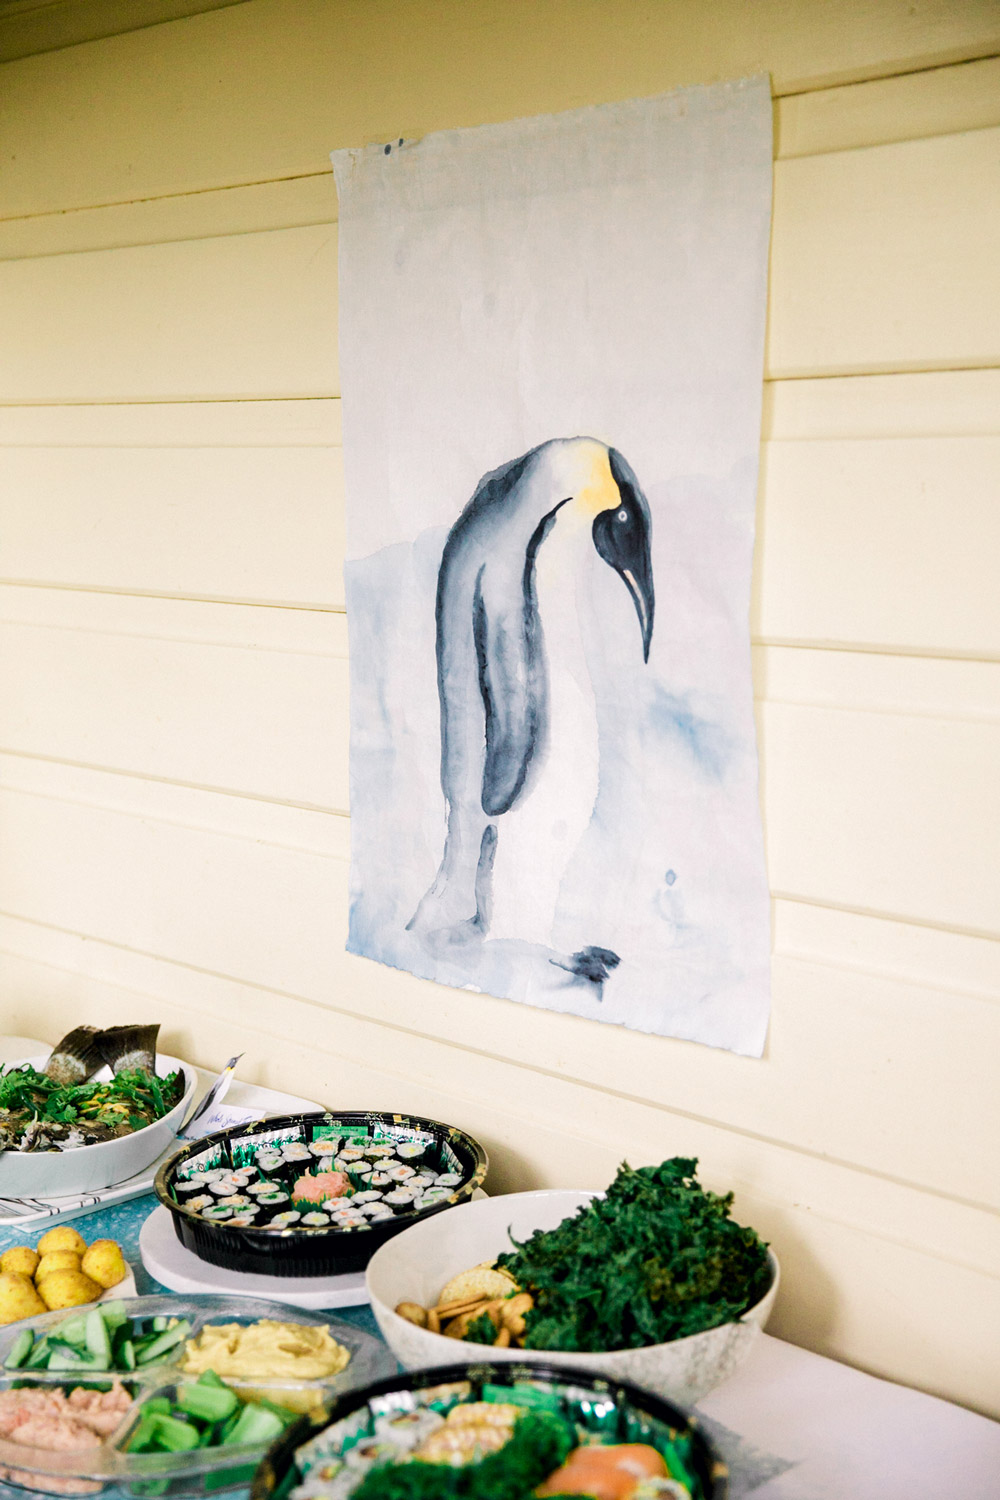 Penguin party food choices included sushi platters, whole steamed fish and kale 'seaweed' chips